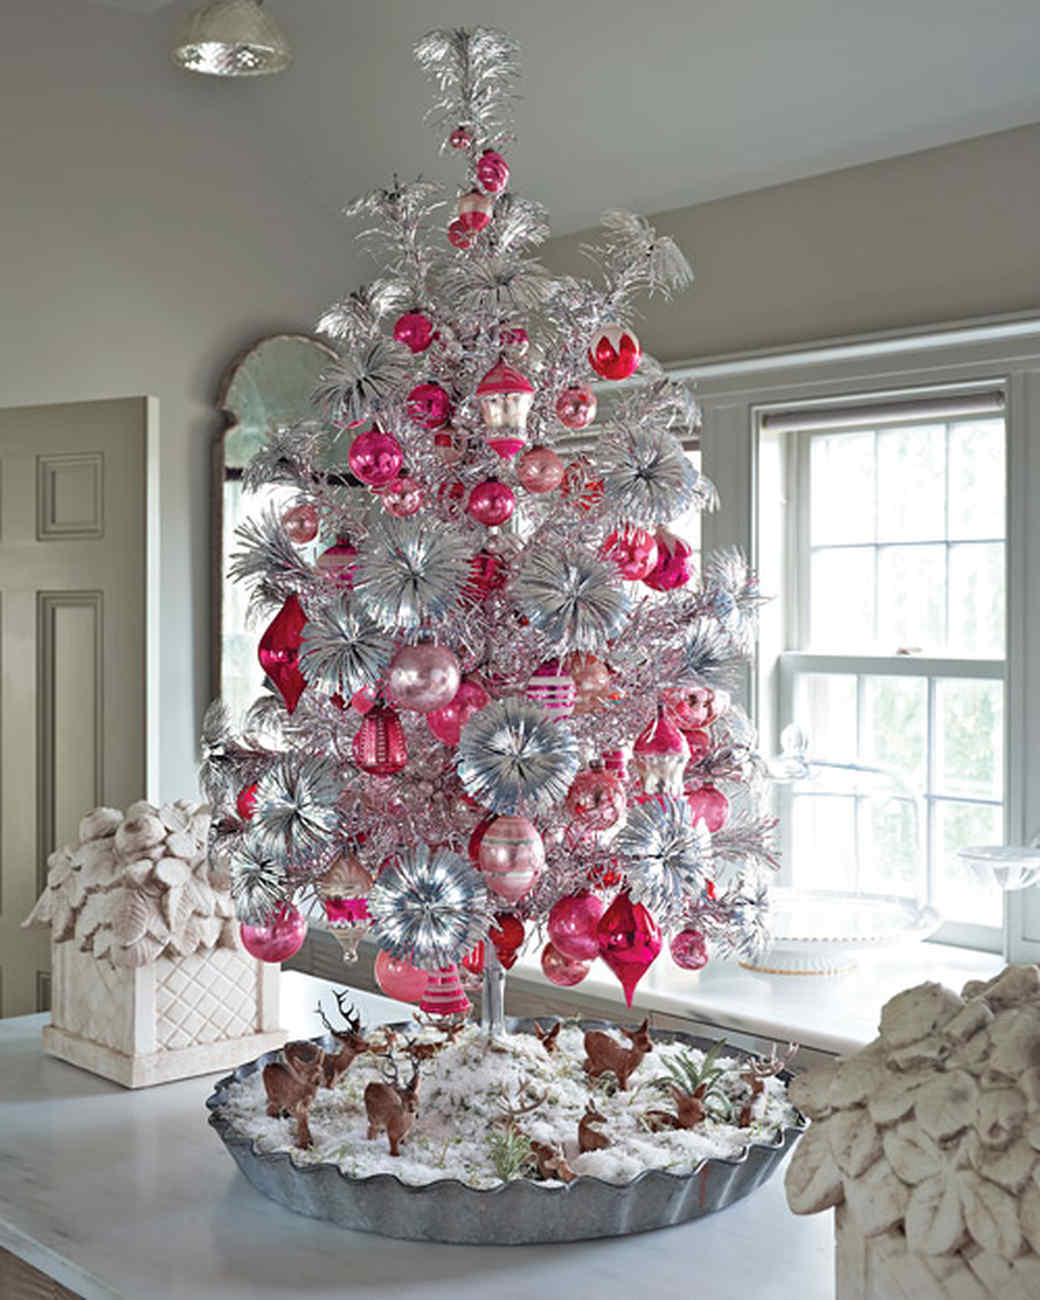 28 creative christmas tree decorating ideas martha stewart - Red And Silver Christmas Decorations